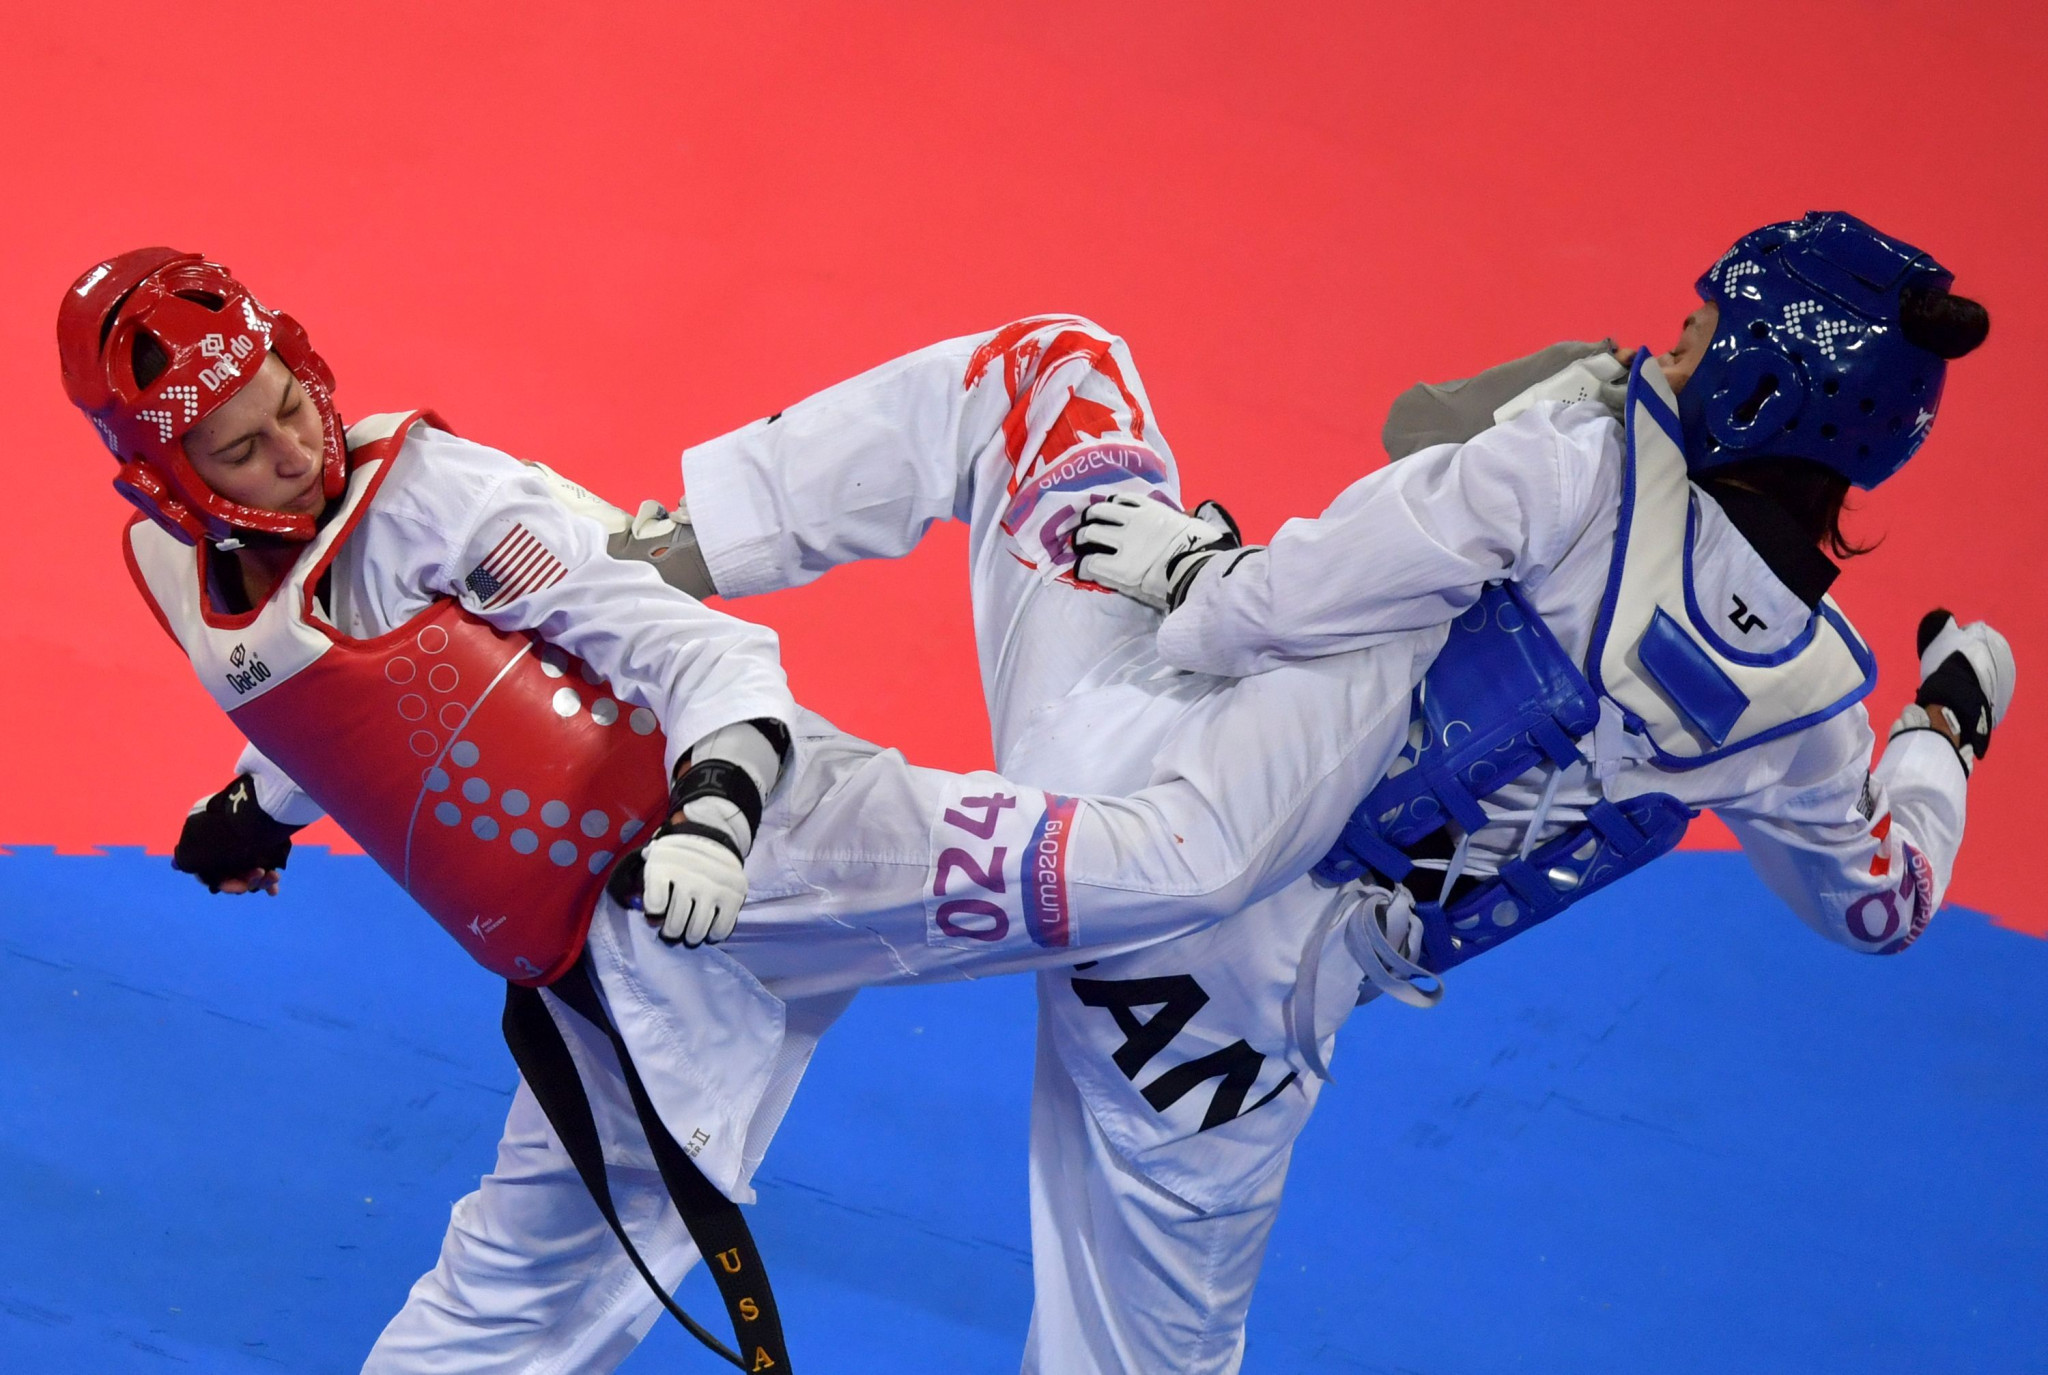 Skylar Park, right, won World Championship bronze and Pan American Games silver last year ©Getty Images